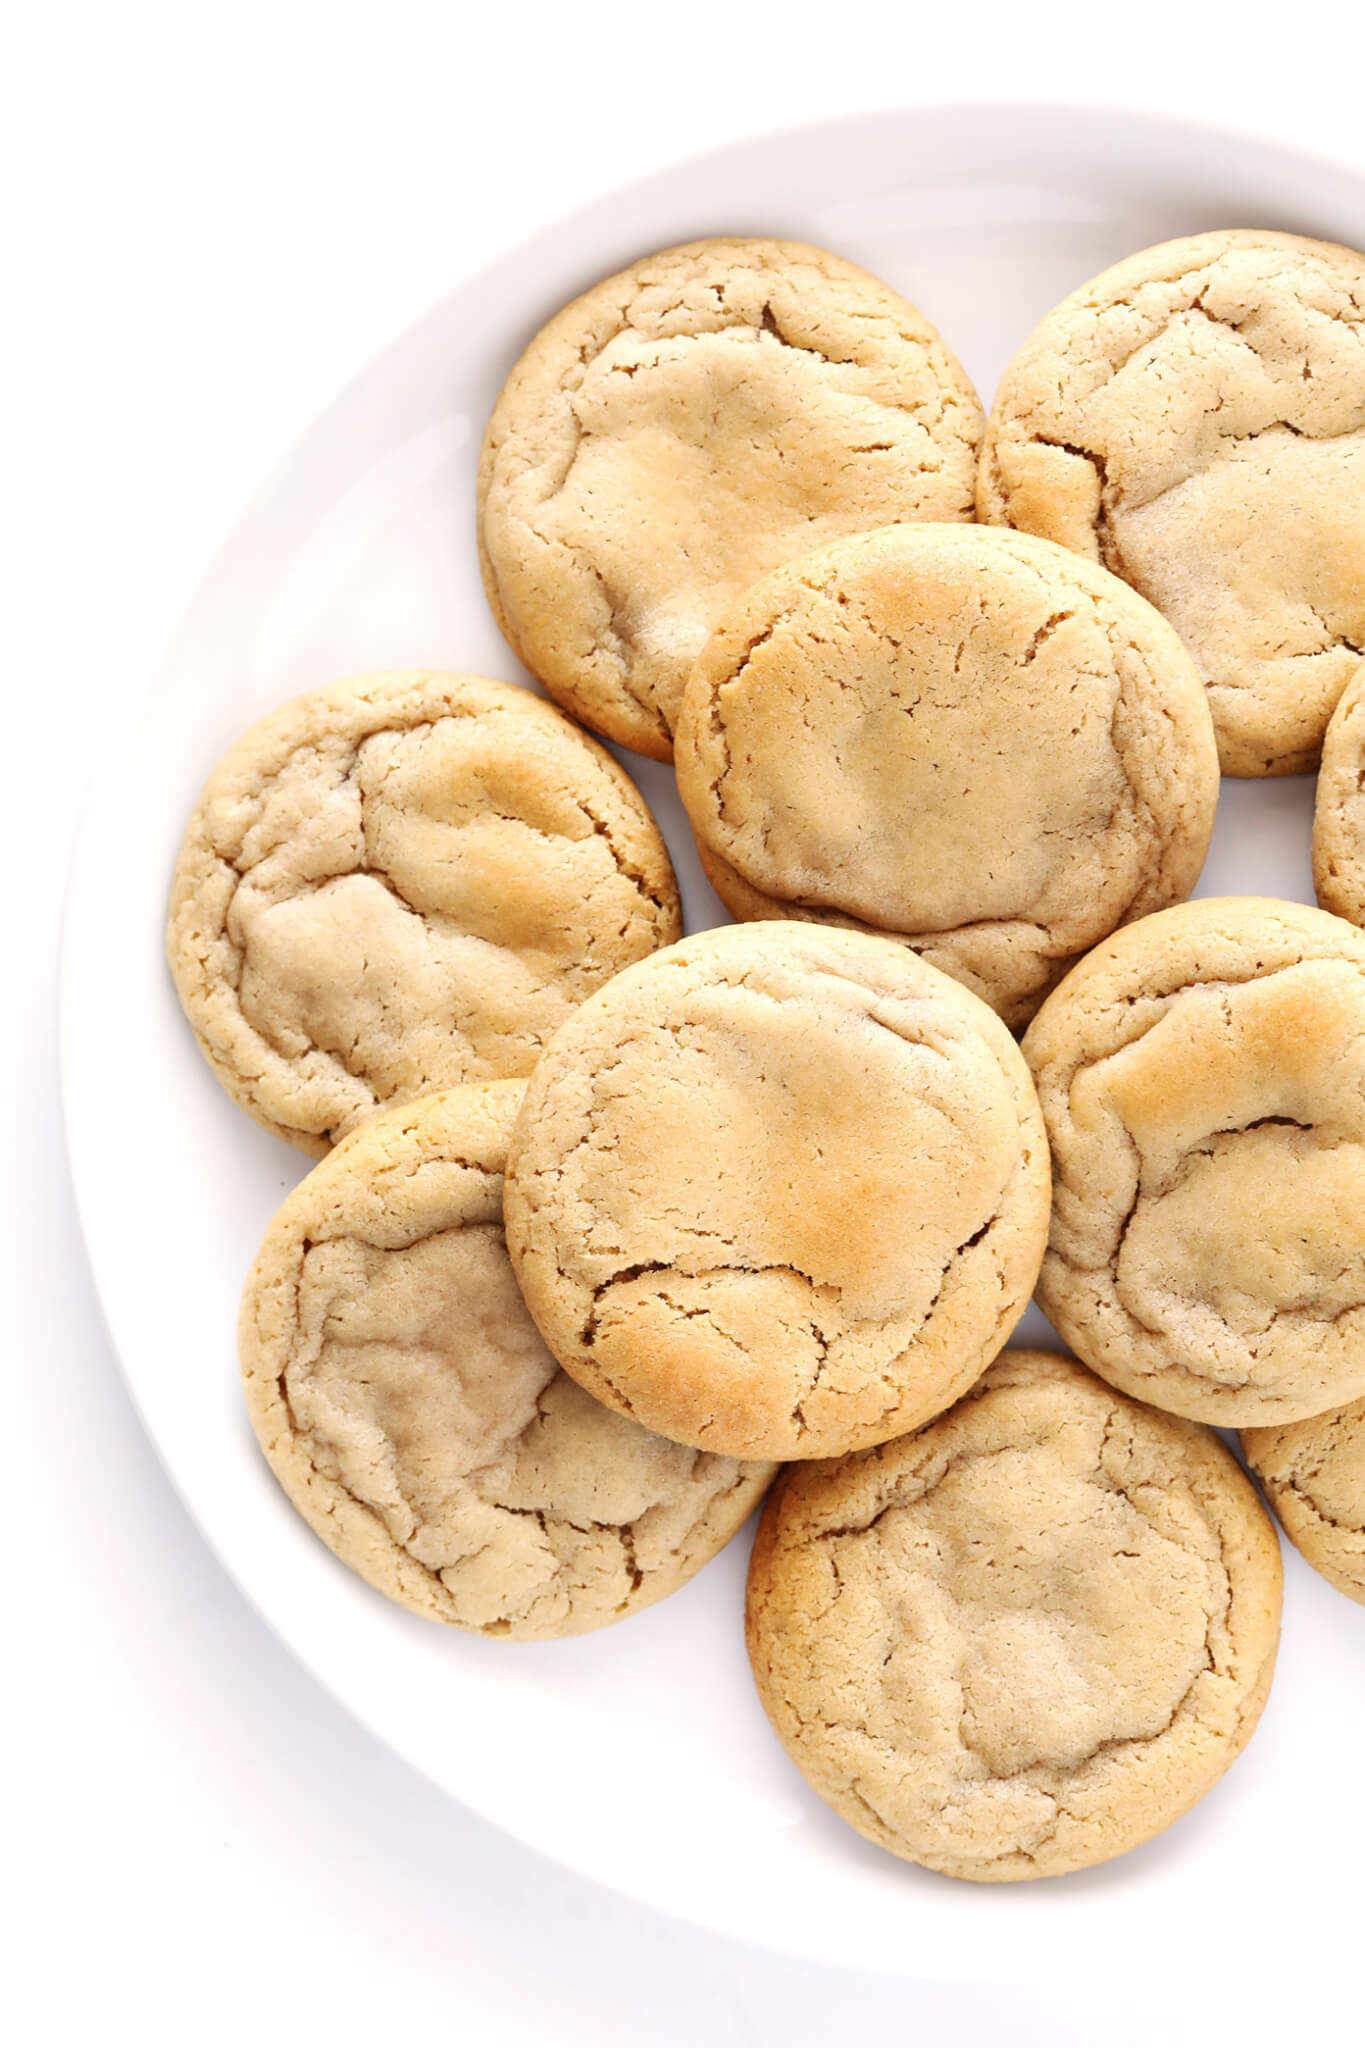 """These soft and chewy Chocolate """"Chip-Less"""" Cookies are everything you love about traditional CCCs...just without the chocolate chips! So delicious, especially when sprinkled with flaked sea salt. 